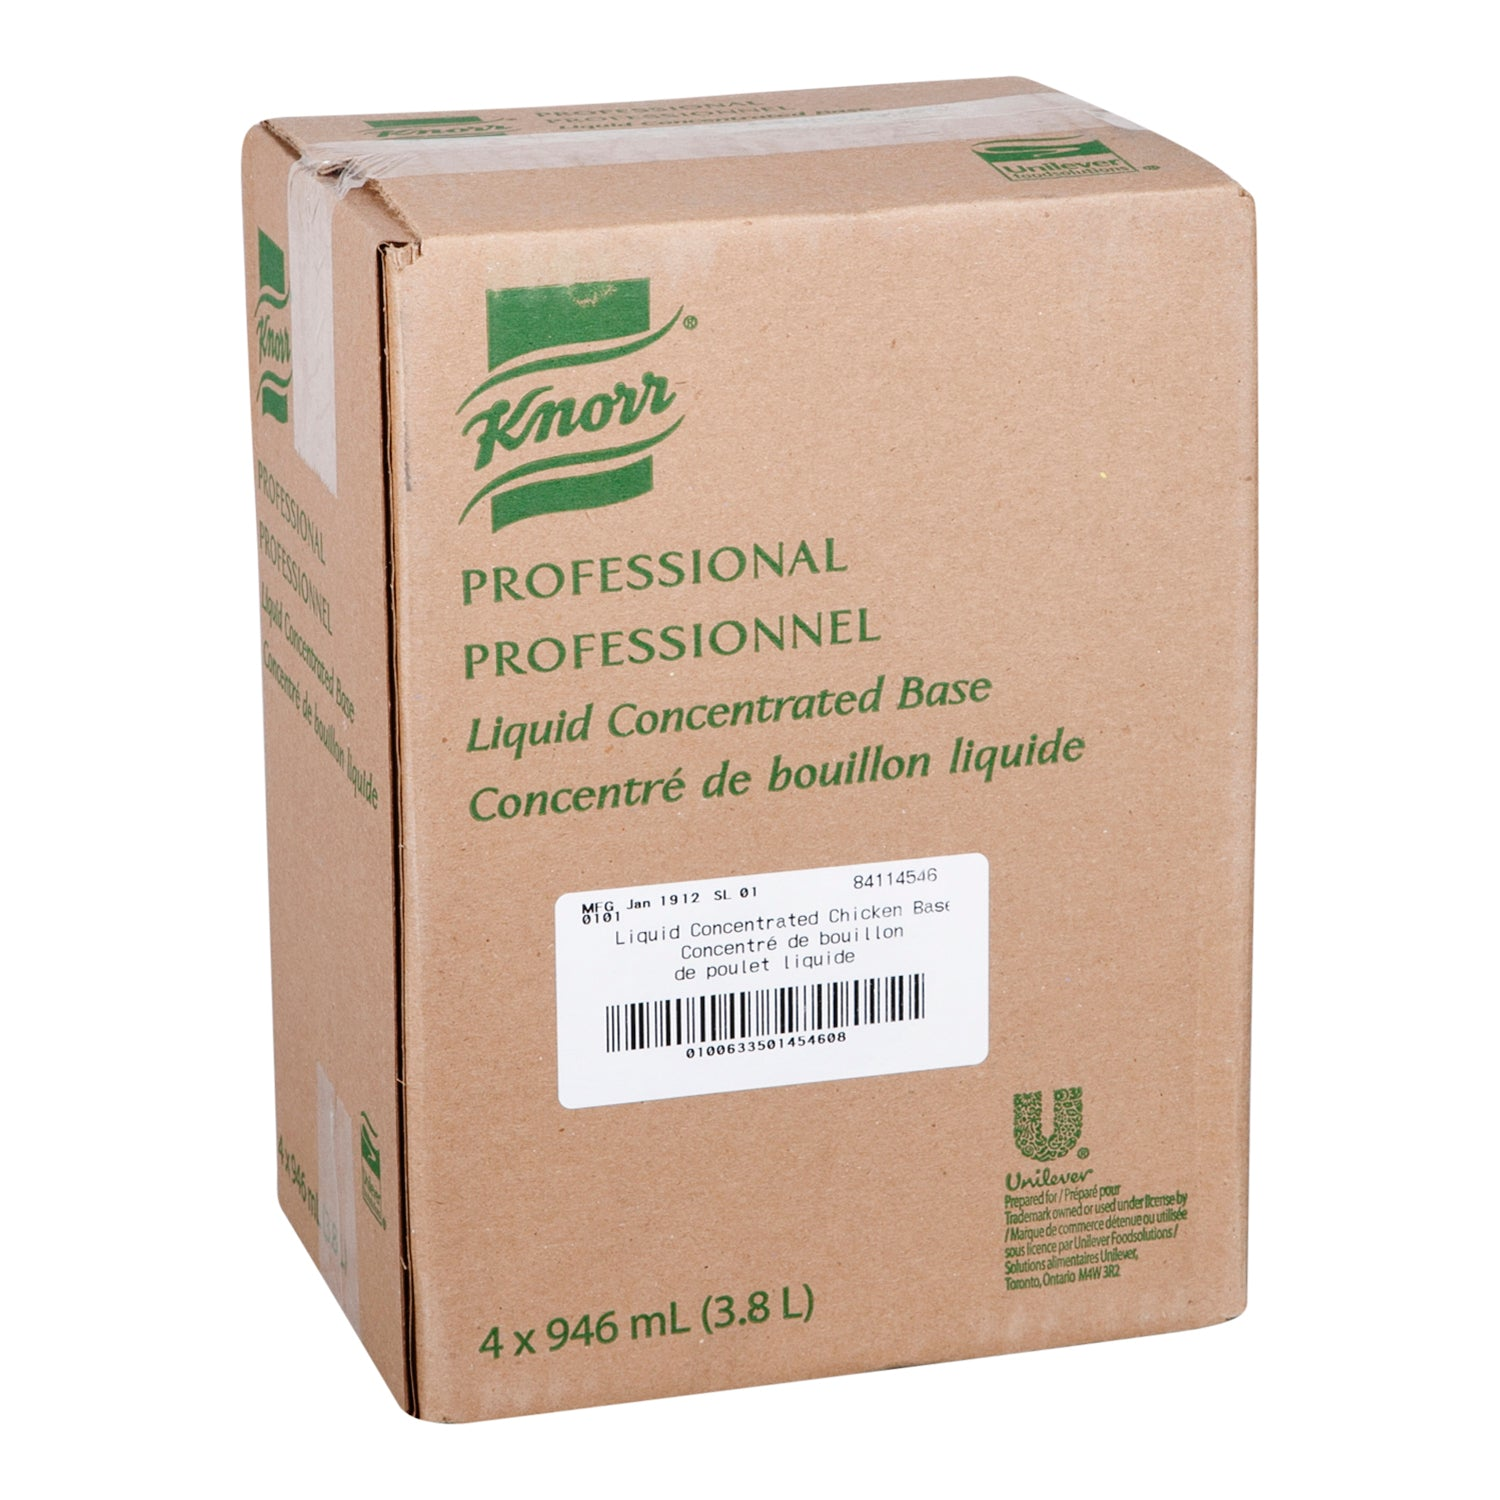 Knorr Professional Liquid Concentrated Chicken Base 946 ml - 4 Pack [$17.00/each]